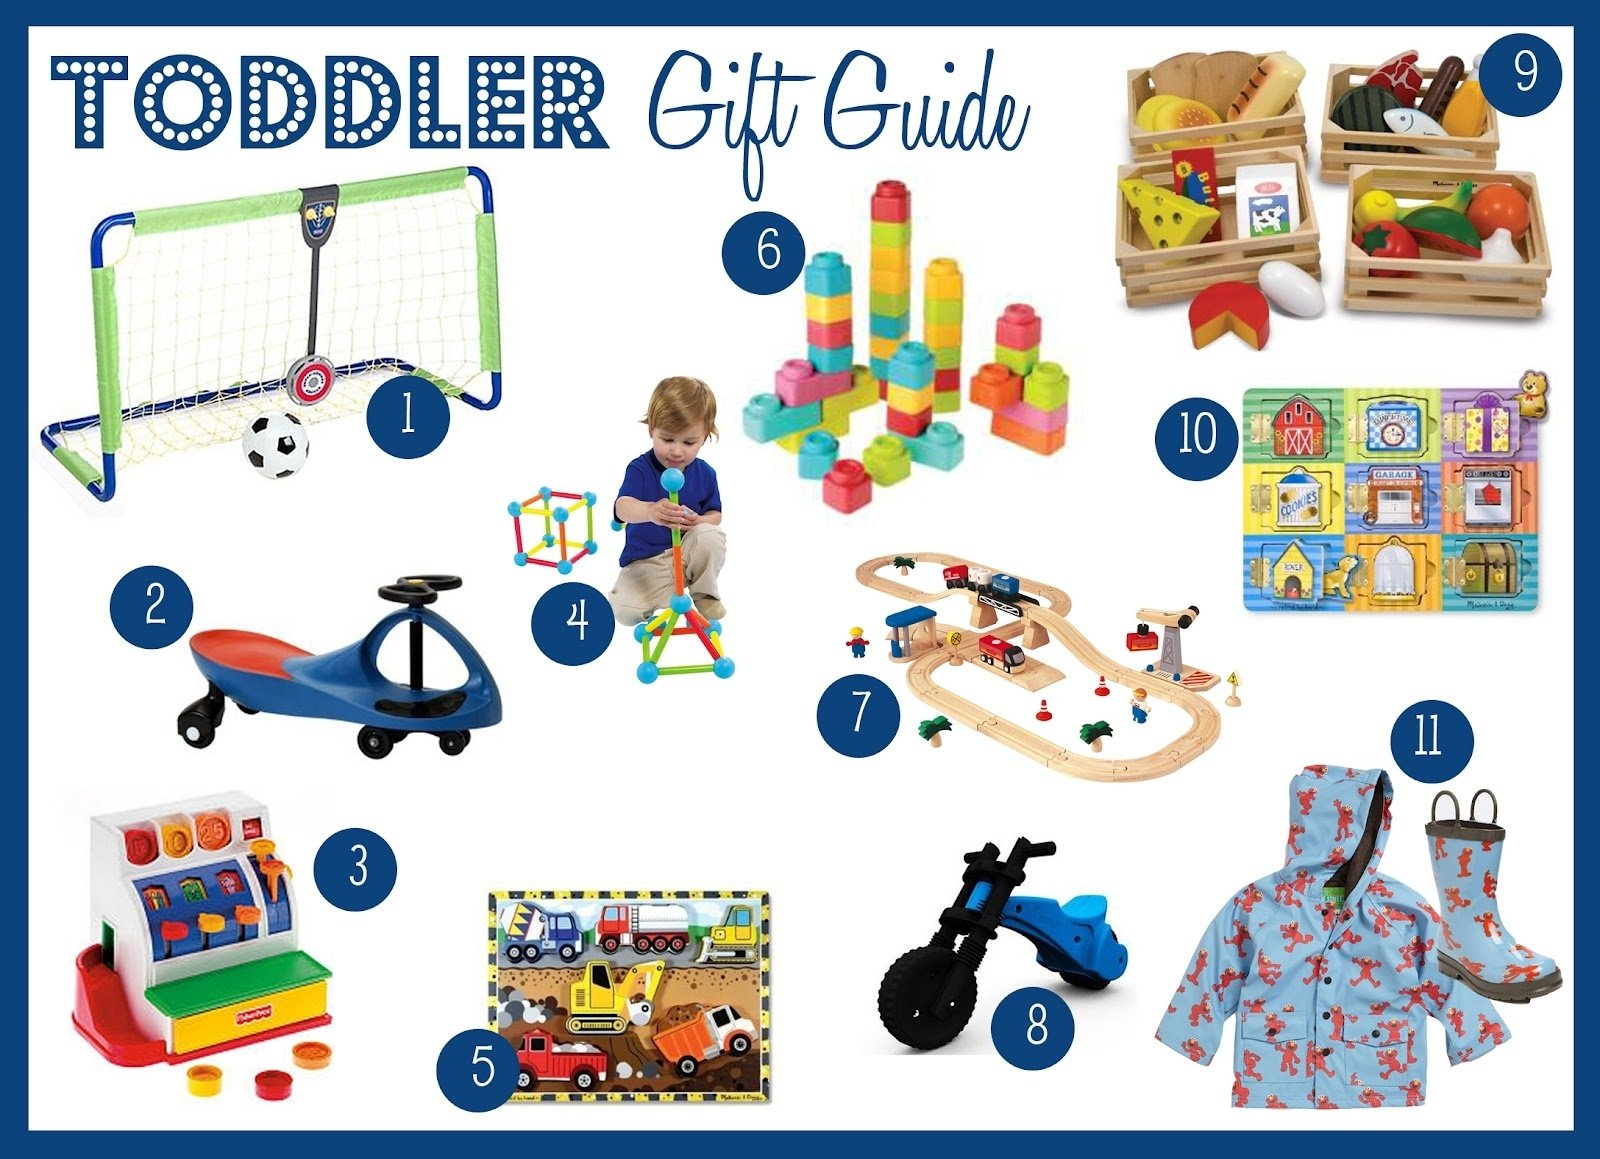 10 Great Gift Ideas For A Two Year Old Boy daily dimples toddler gift guide 1 2020